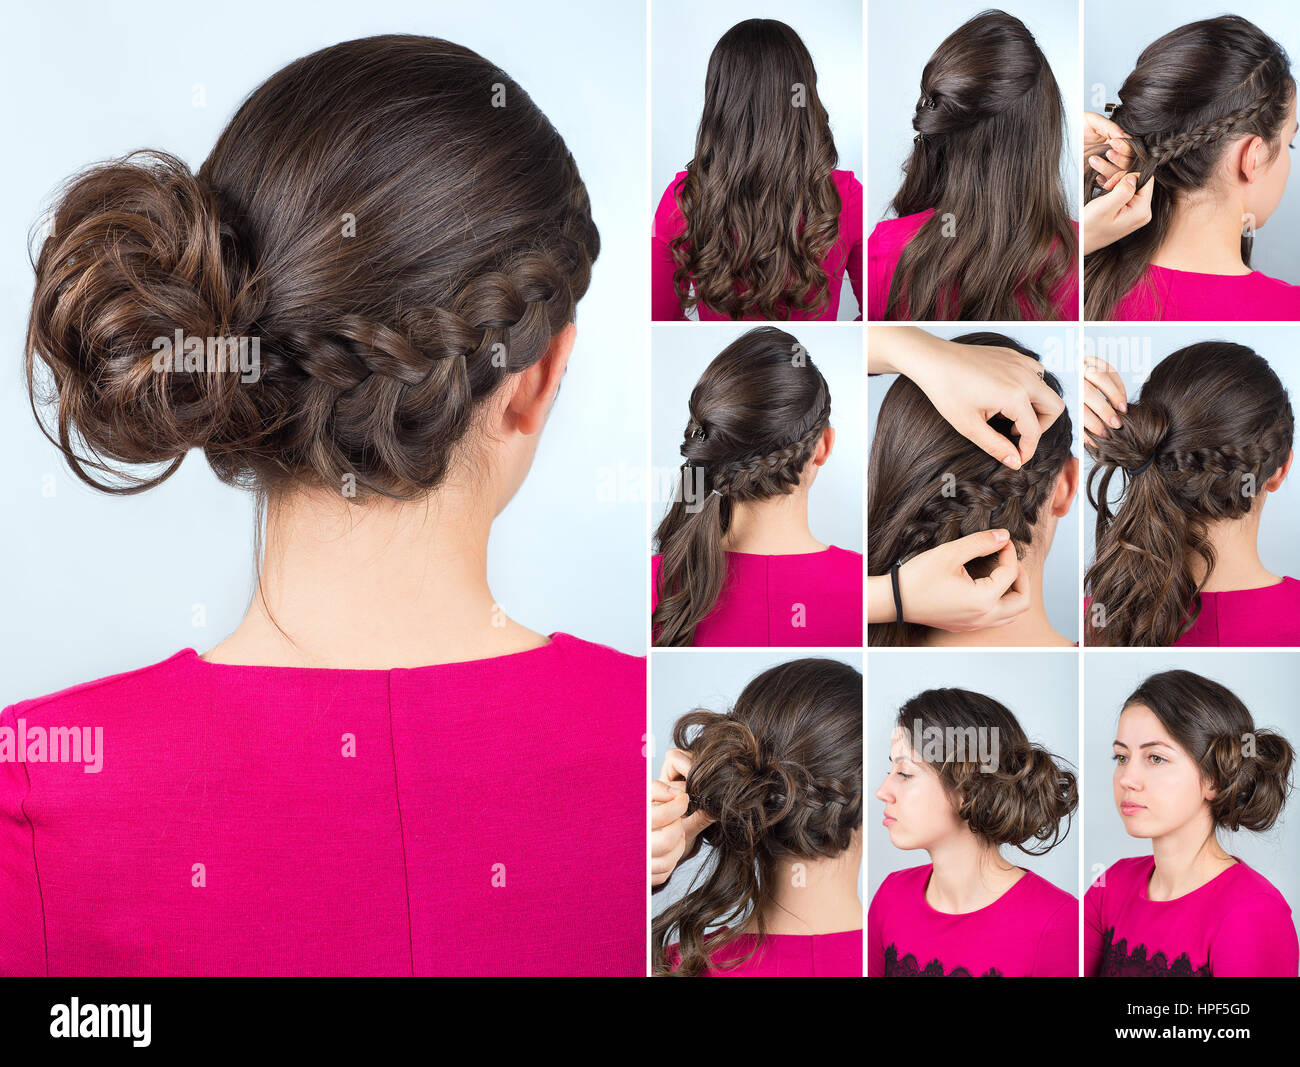 Hairstyle Twisted Bun To One Side And Braid On Curly Hair